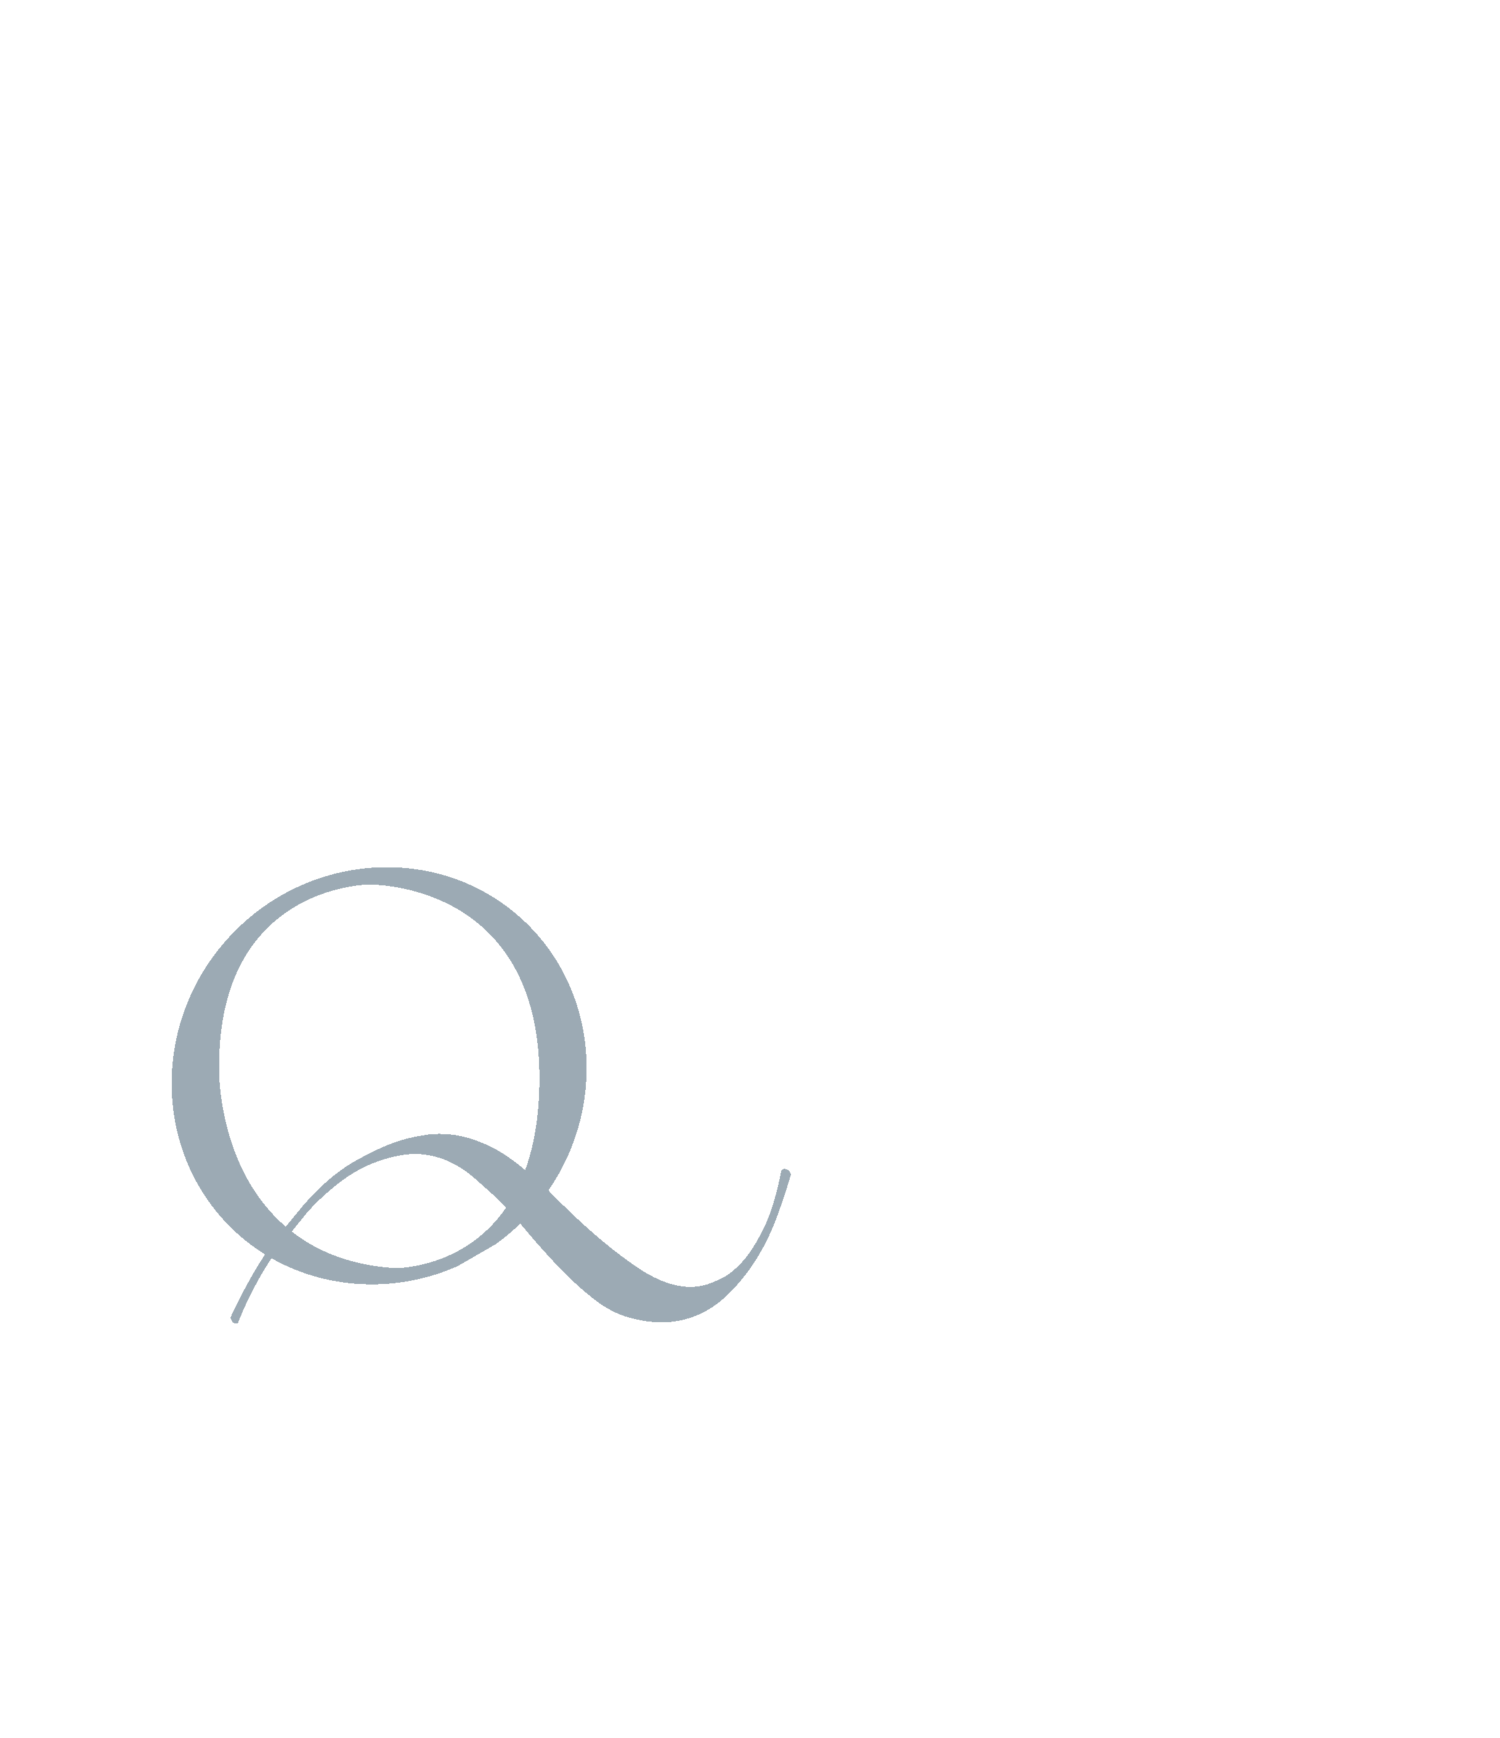 QB Investing: Property Investment & Development